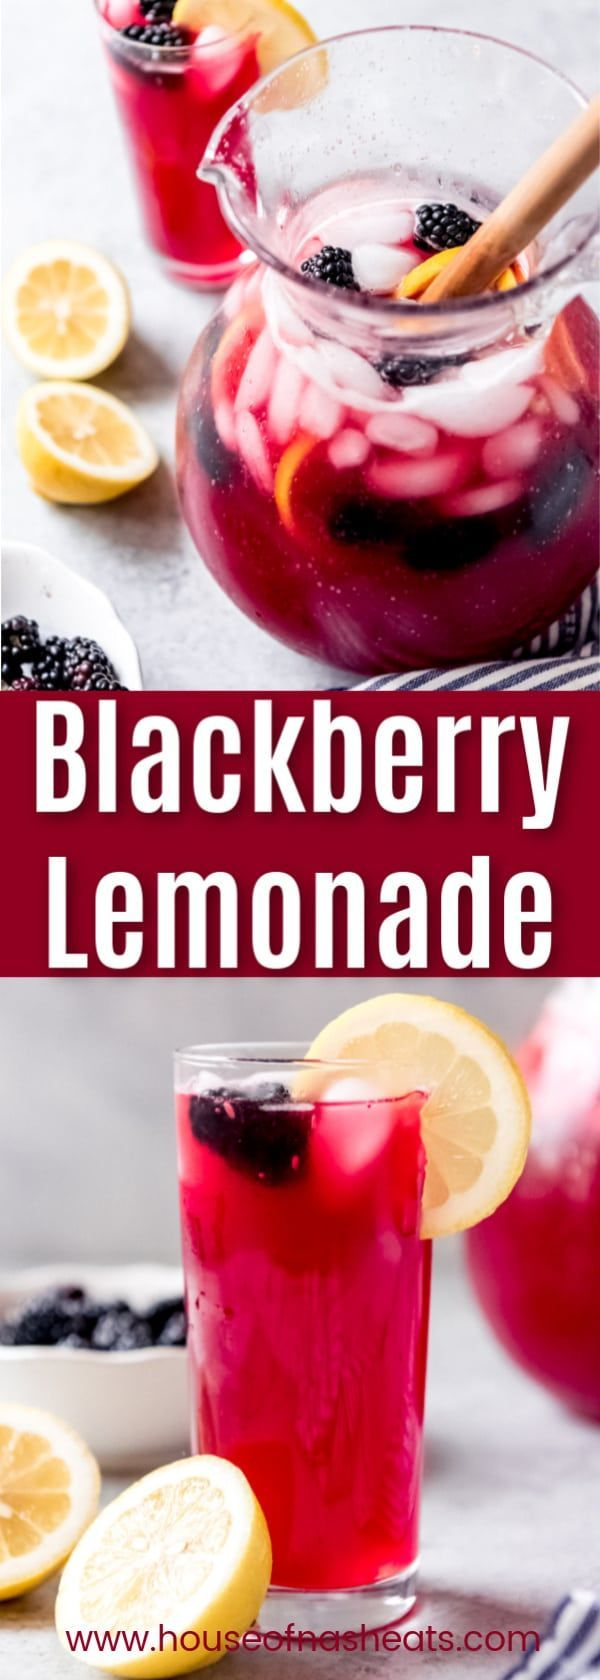 Homemade Blackberry Lemonade is the perfect drink for spring or summer! Our fa…